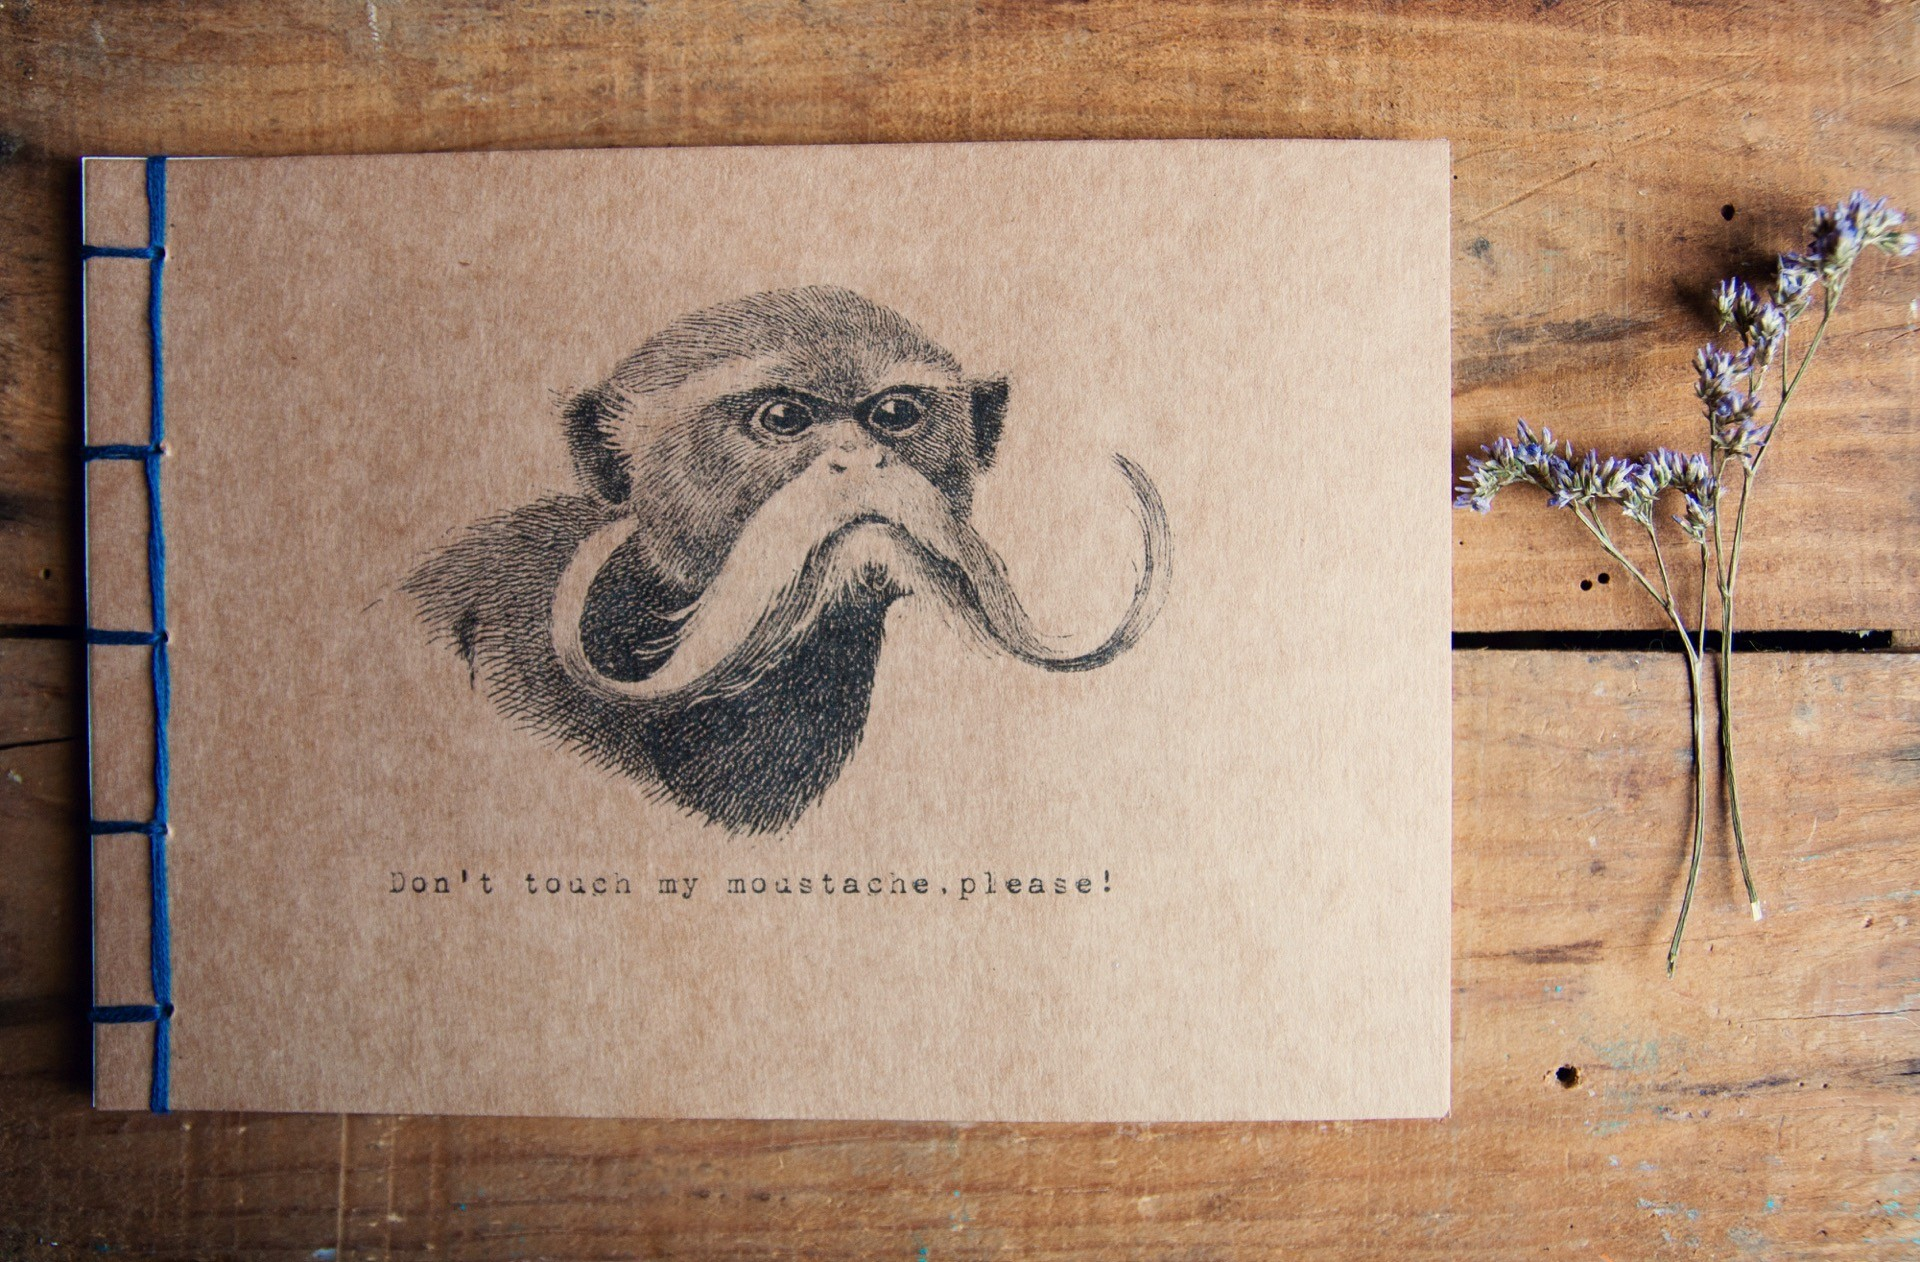 Manuche Postcards from - Don't touch my moustache please!